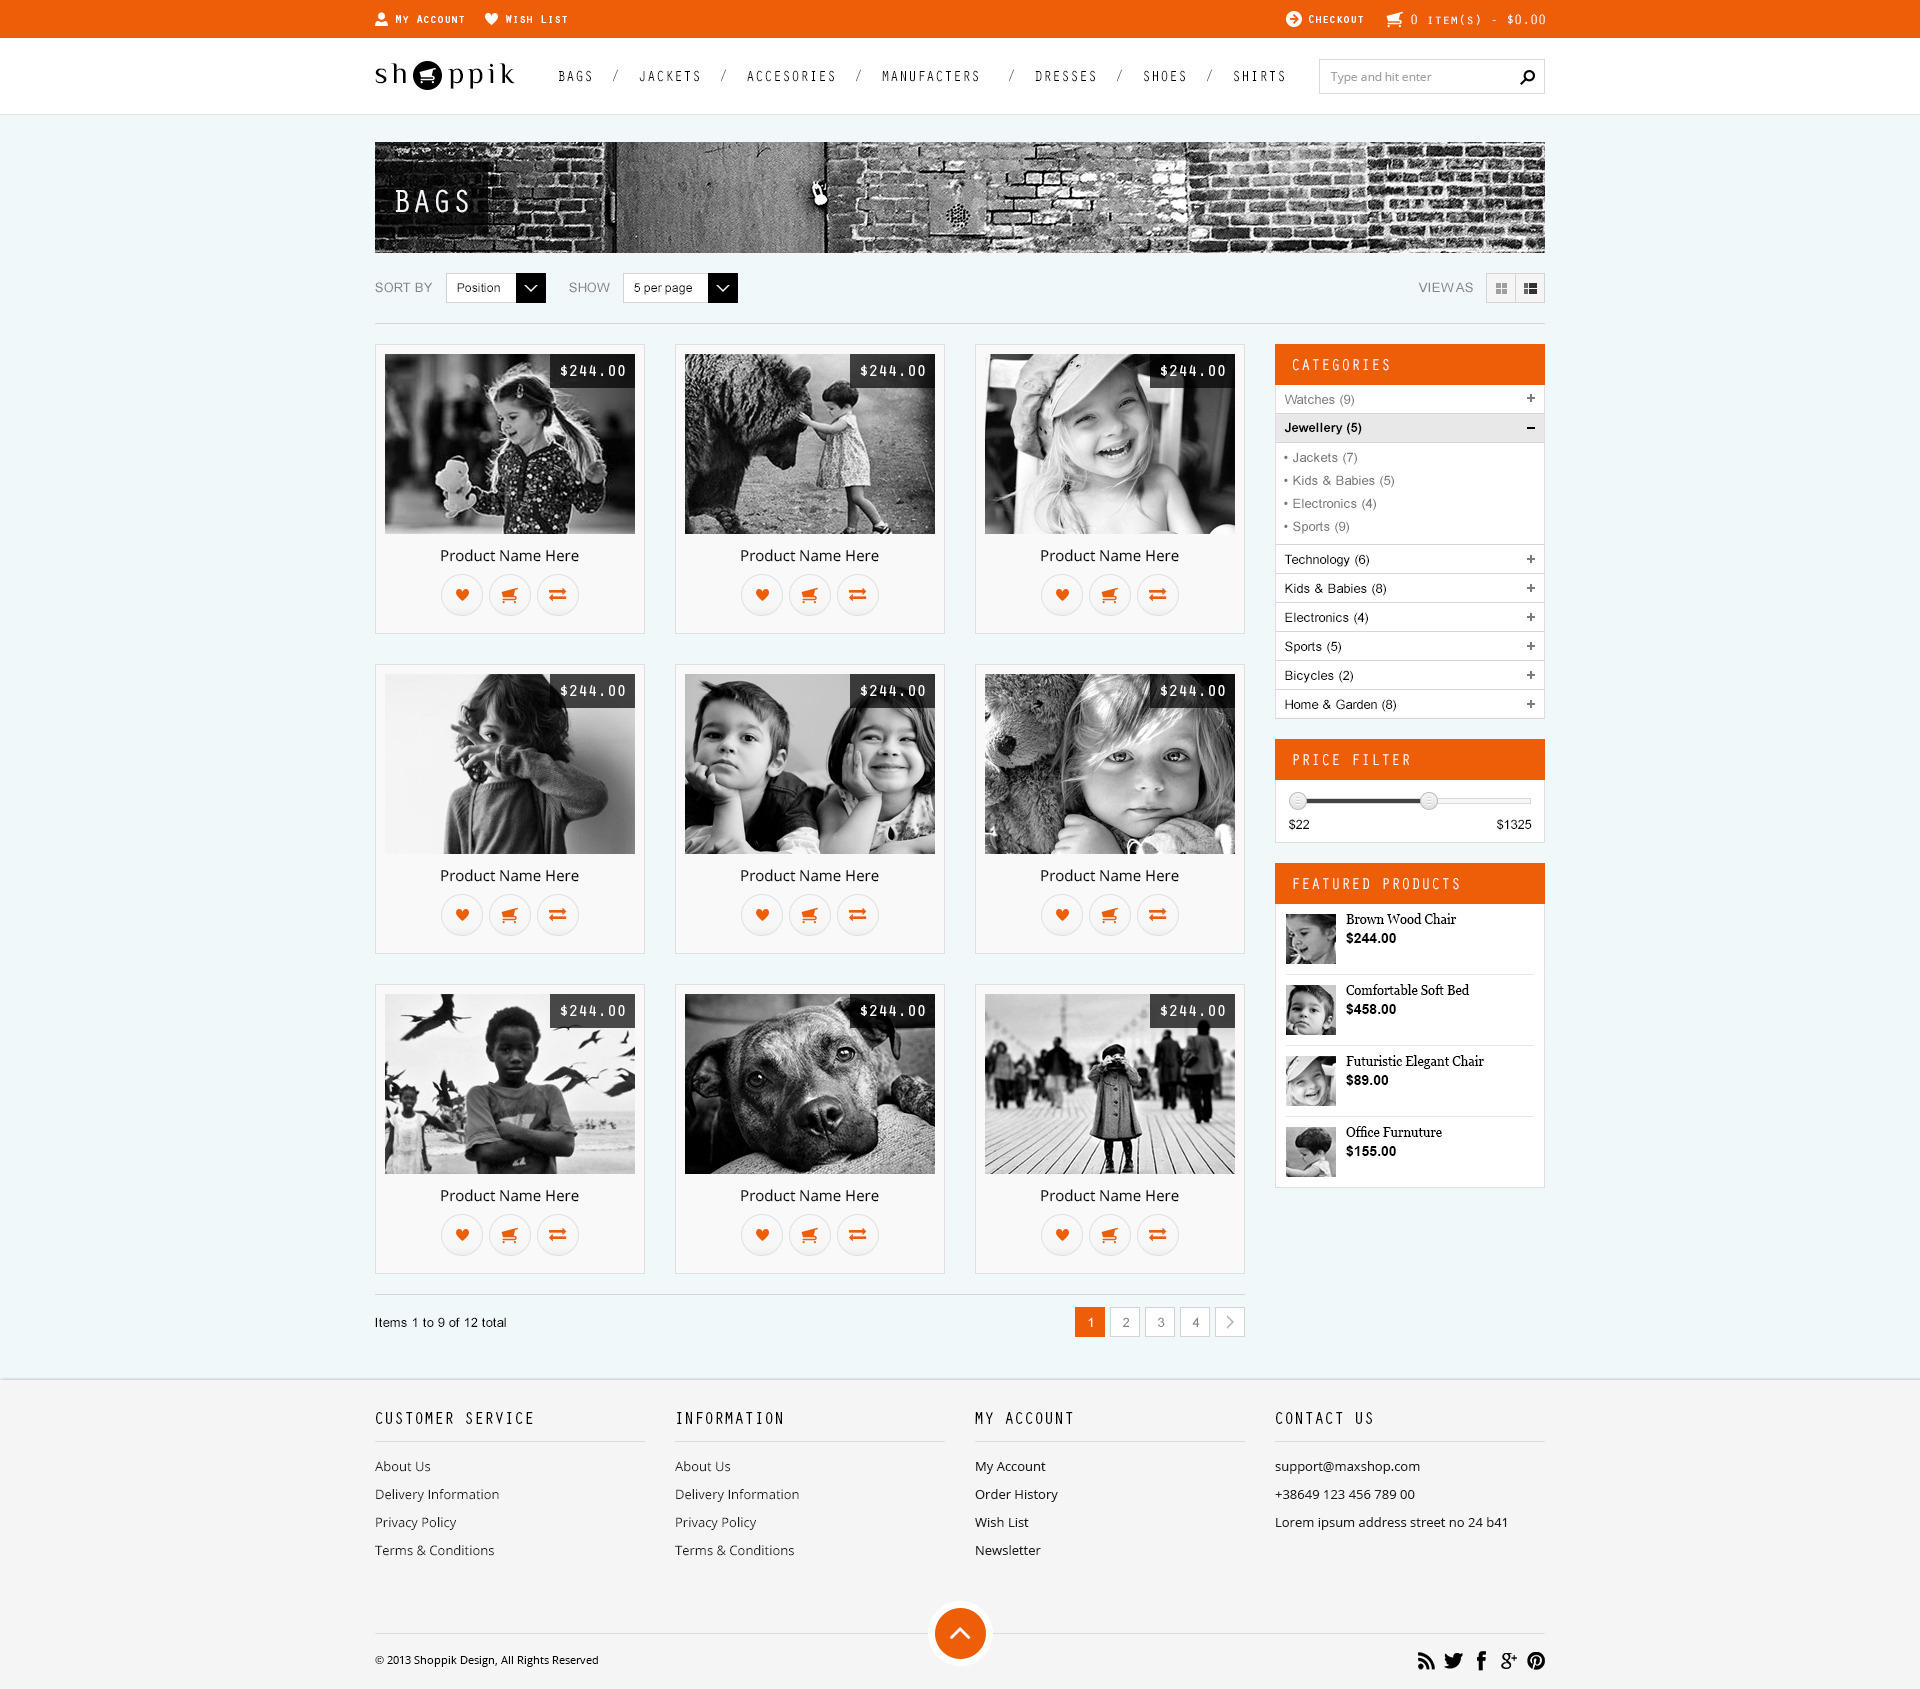 Great 1 Year Experience Resume Format For Java Developer Thin 100th Day Hat Template Round 12 Team Schedule Template 15 Year Old Resume Old 1st Job Resume Objective Soft2014 Yearly Calendar Template Shoppik   HTML Ecommerce Template By PremiumLayers | ThemeForest